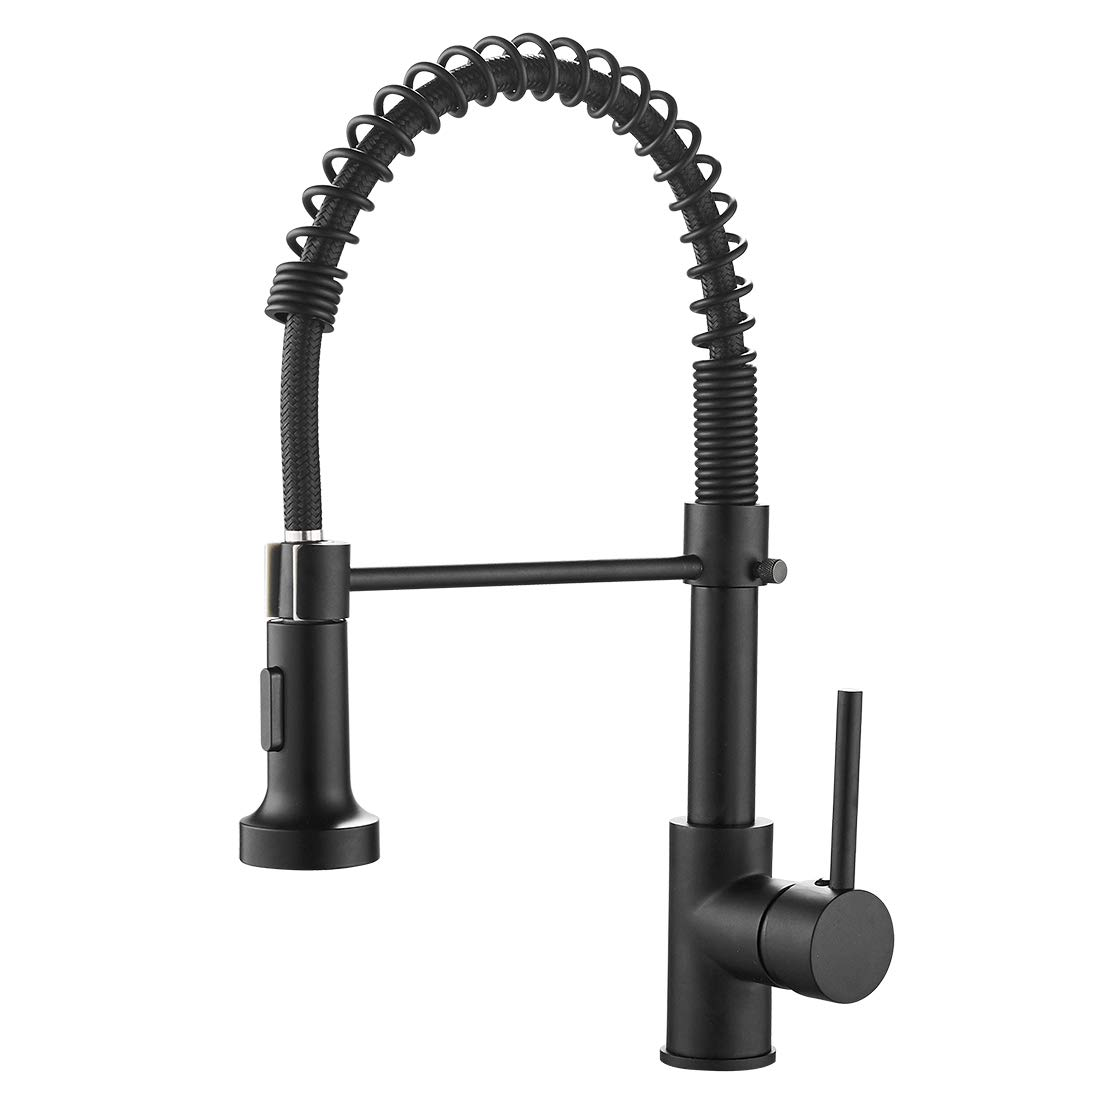 OWOFAN Lead-Free Commercial Solid Brass Single Handle Single Lever Pull Down Sprayer Spring Kitchen Sink Faucet, Paint Black Kitchen Faucets 9009R-A by OWOFAN